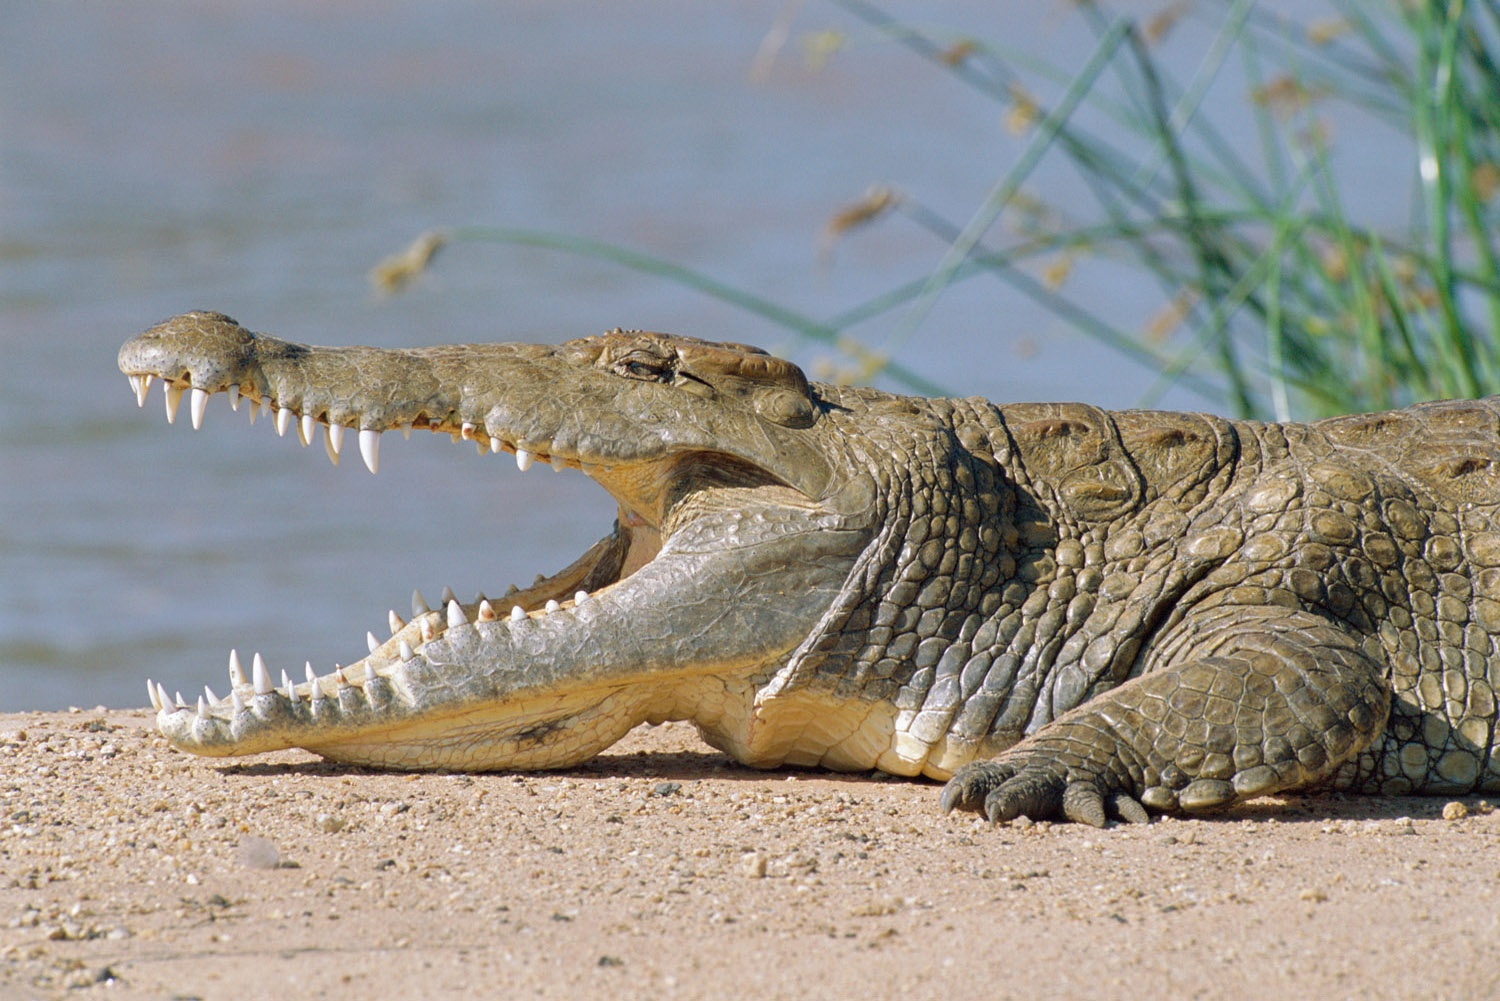 Nile crocodile sunbathing, Samburu National Reserve, Kenya